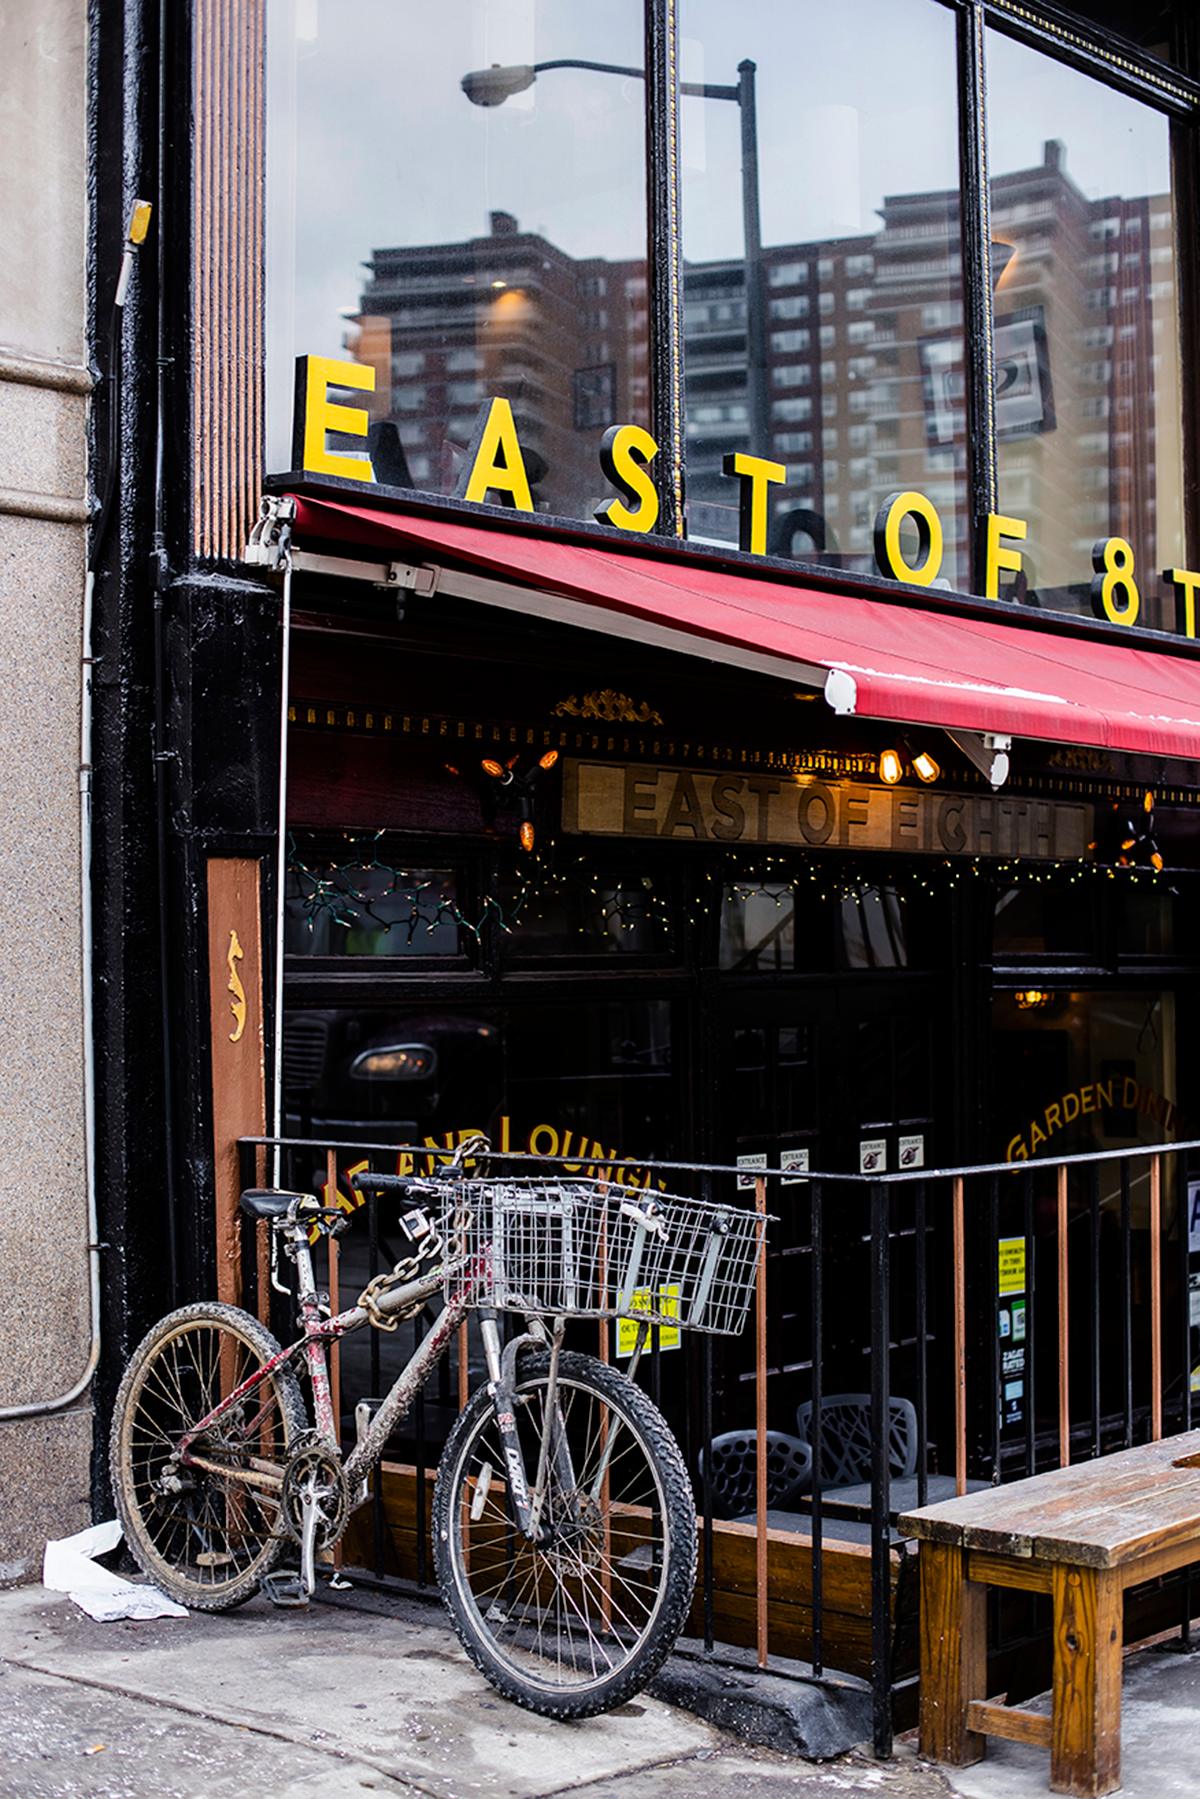 Beautiful photos of New York City February 2015 east of Eighth